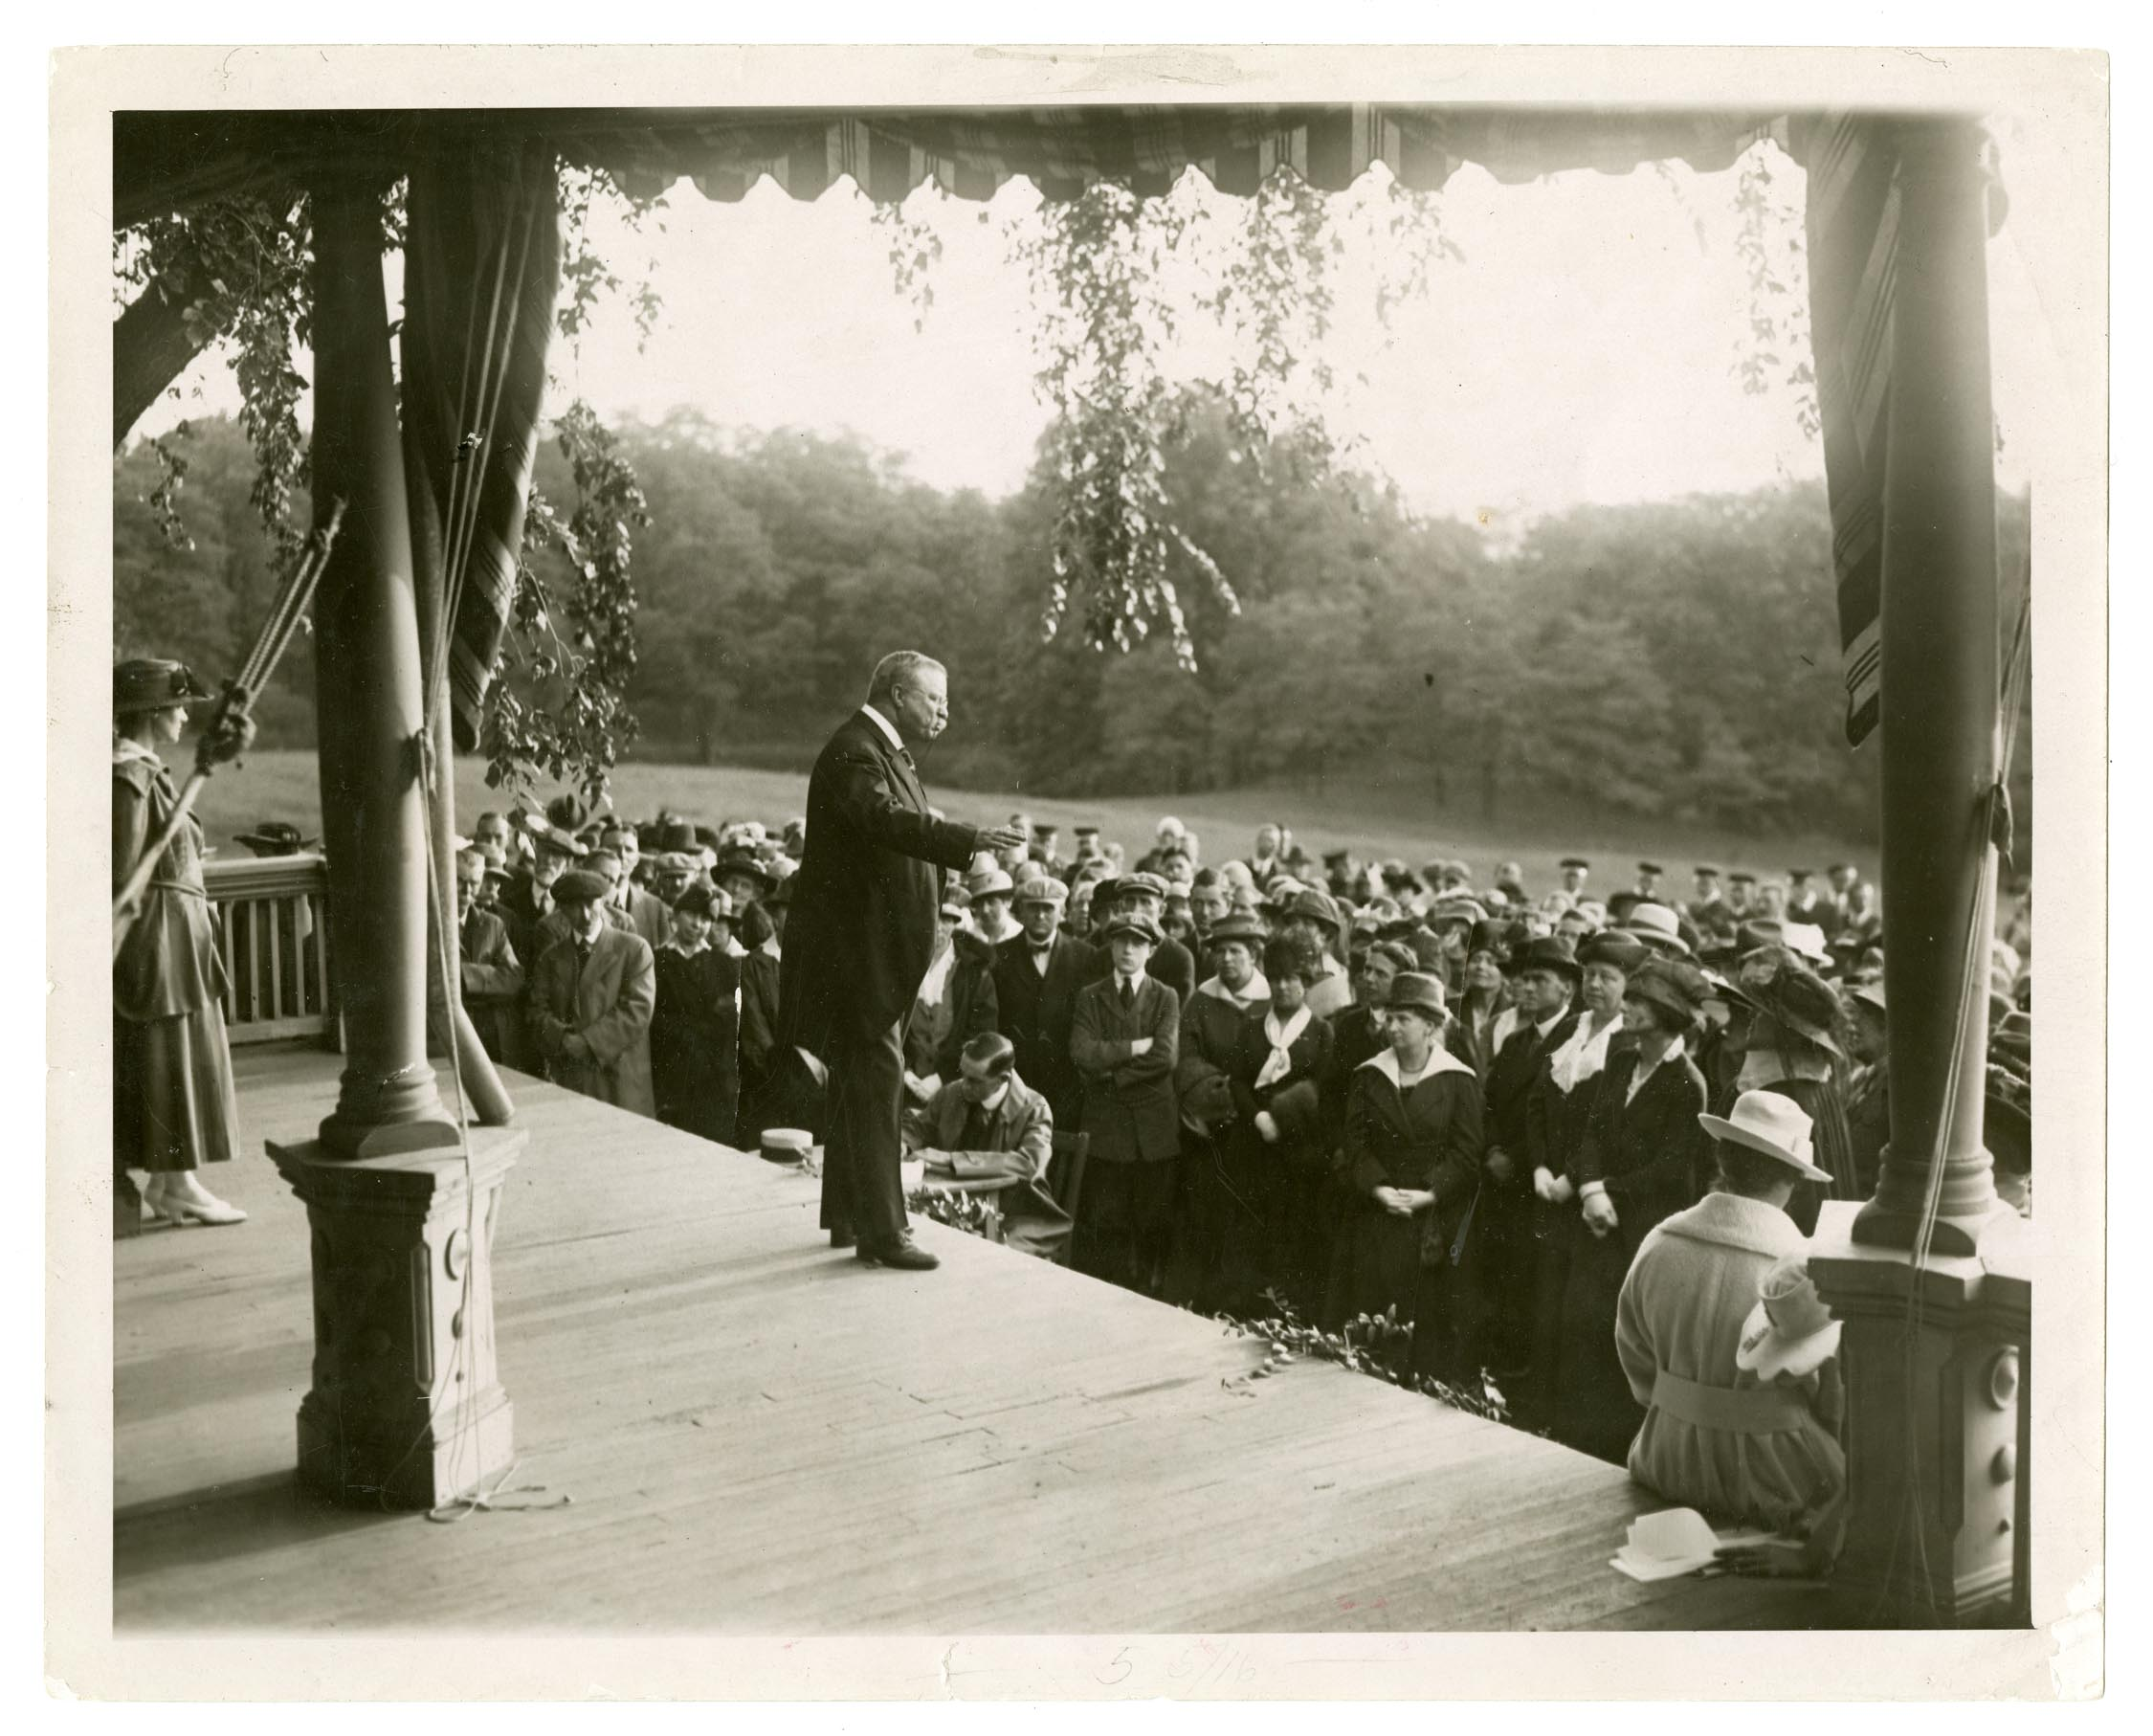 Theodore Roosevelt addresses a crowd of suffrage delegates from the porch of his home at Sagamore Hill in 1917. NPS Photo